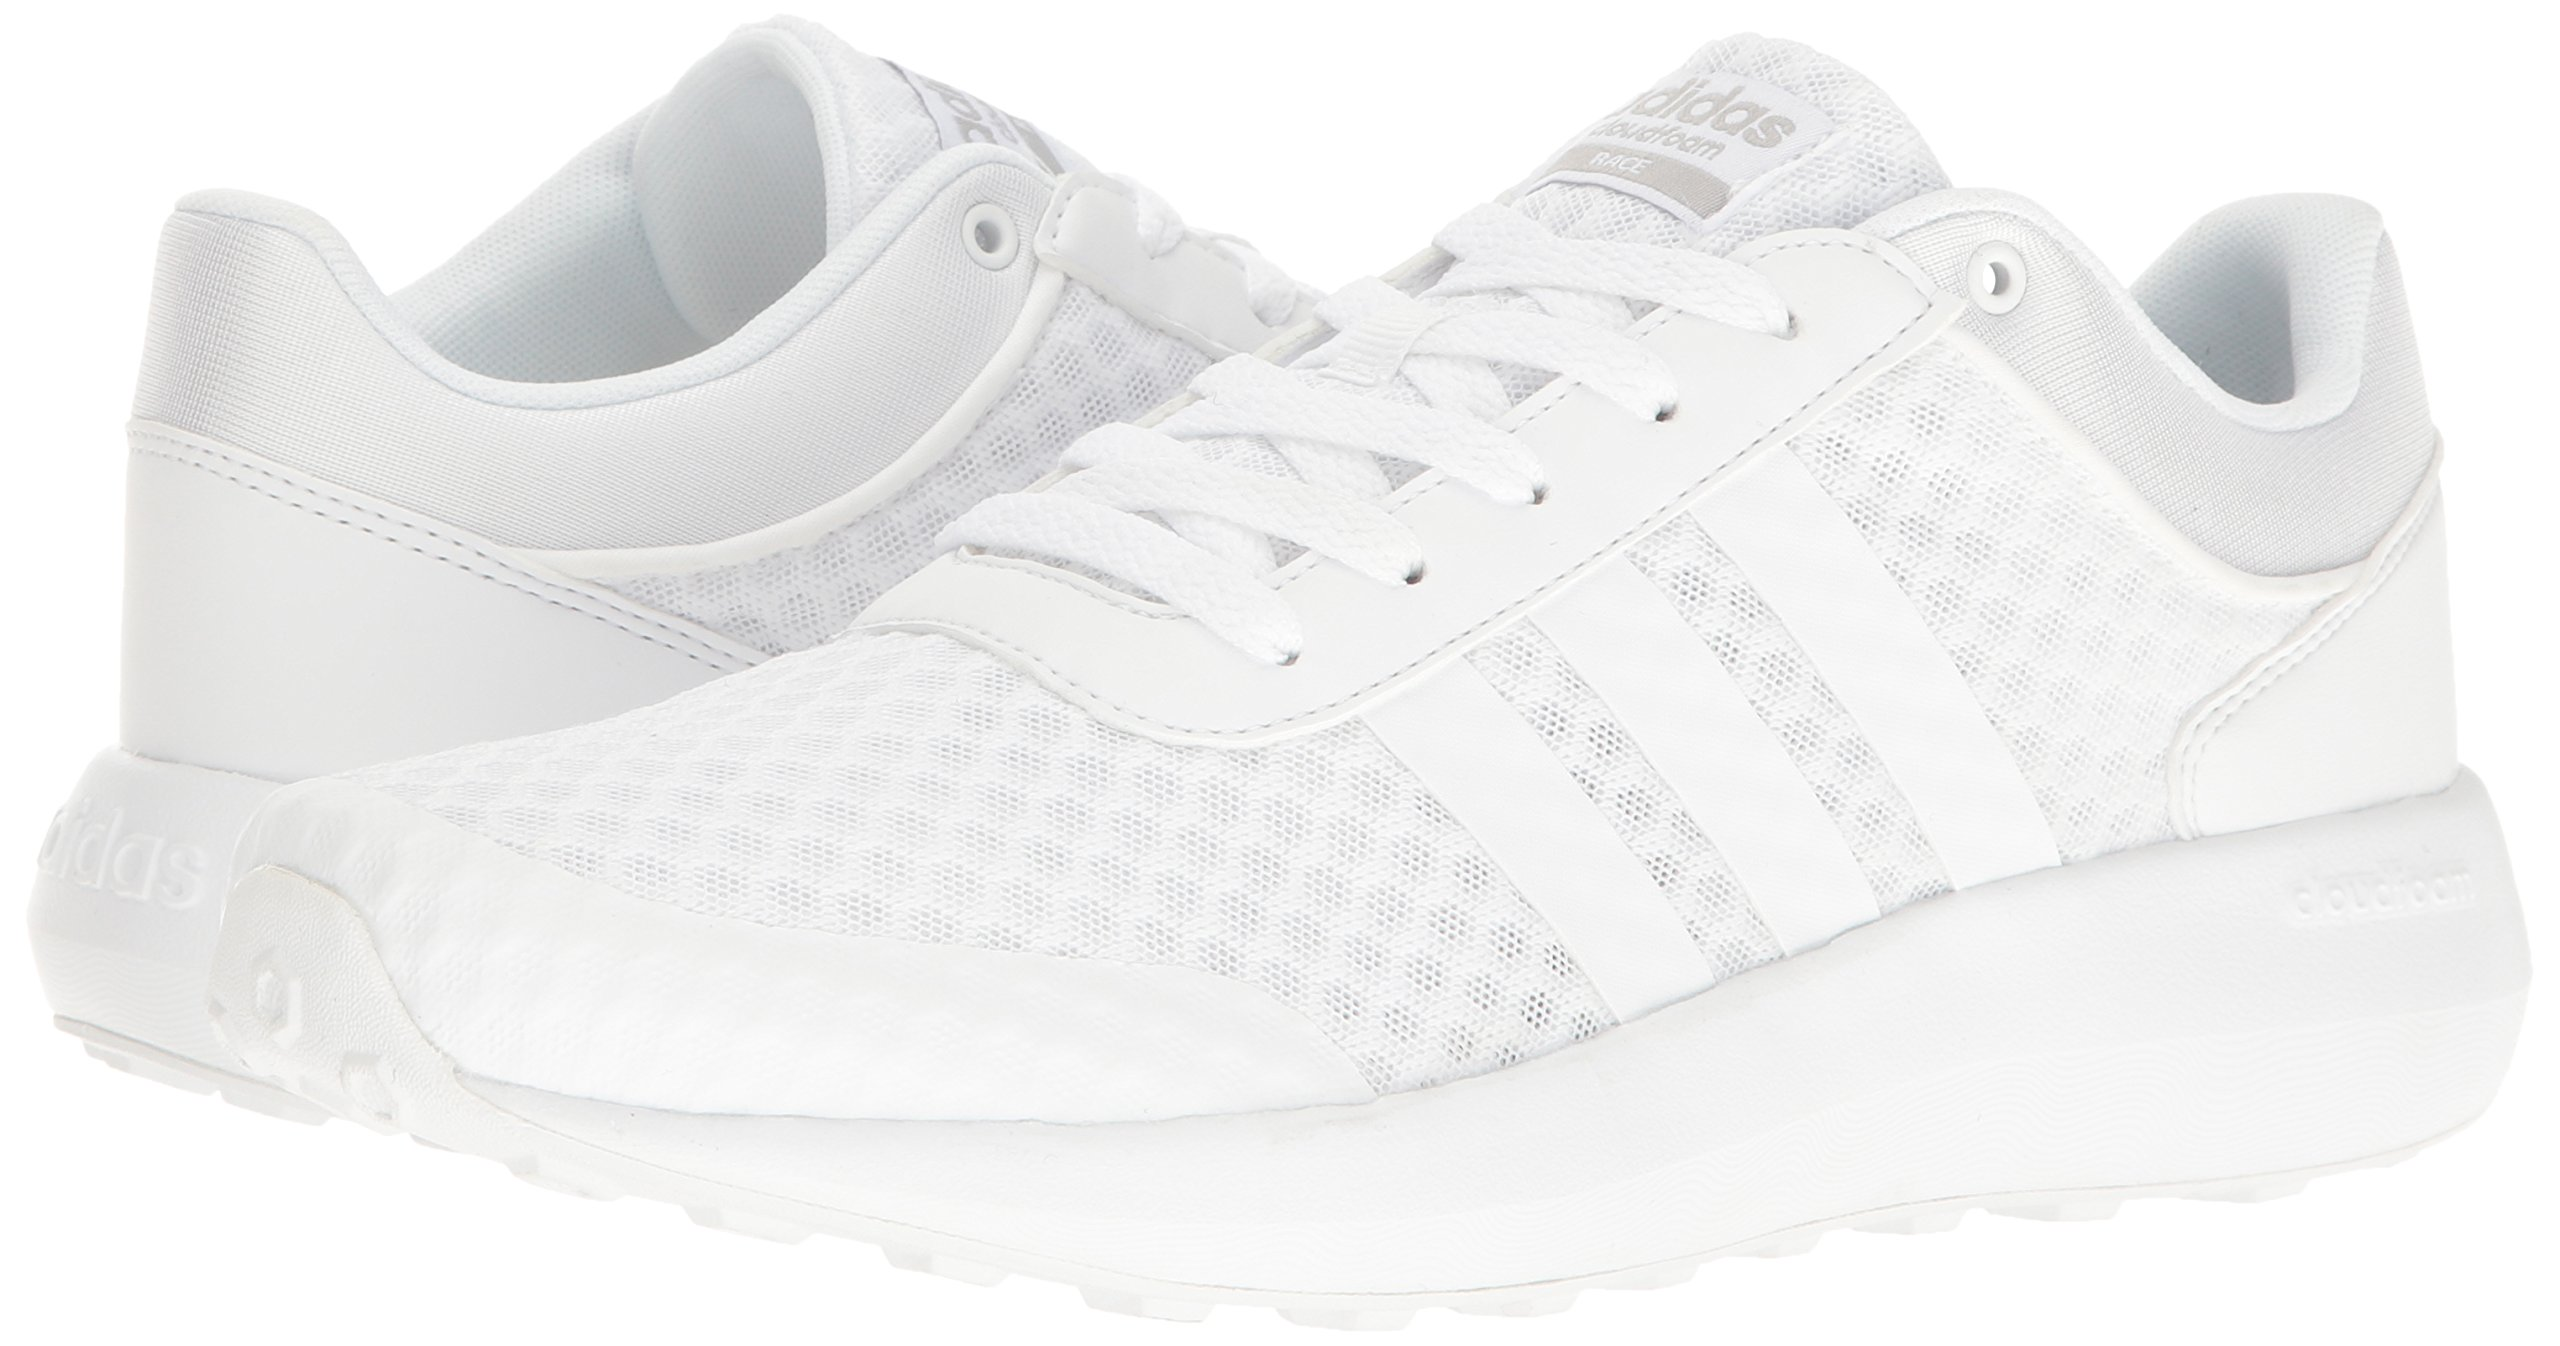 adidas Men's Cloudfoam Race Running Shoe, White/Clear Onix, 9 D-Medium by adidas (Image #6)